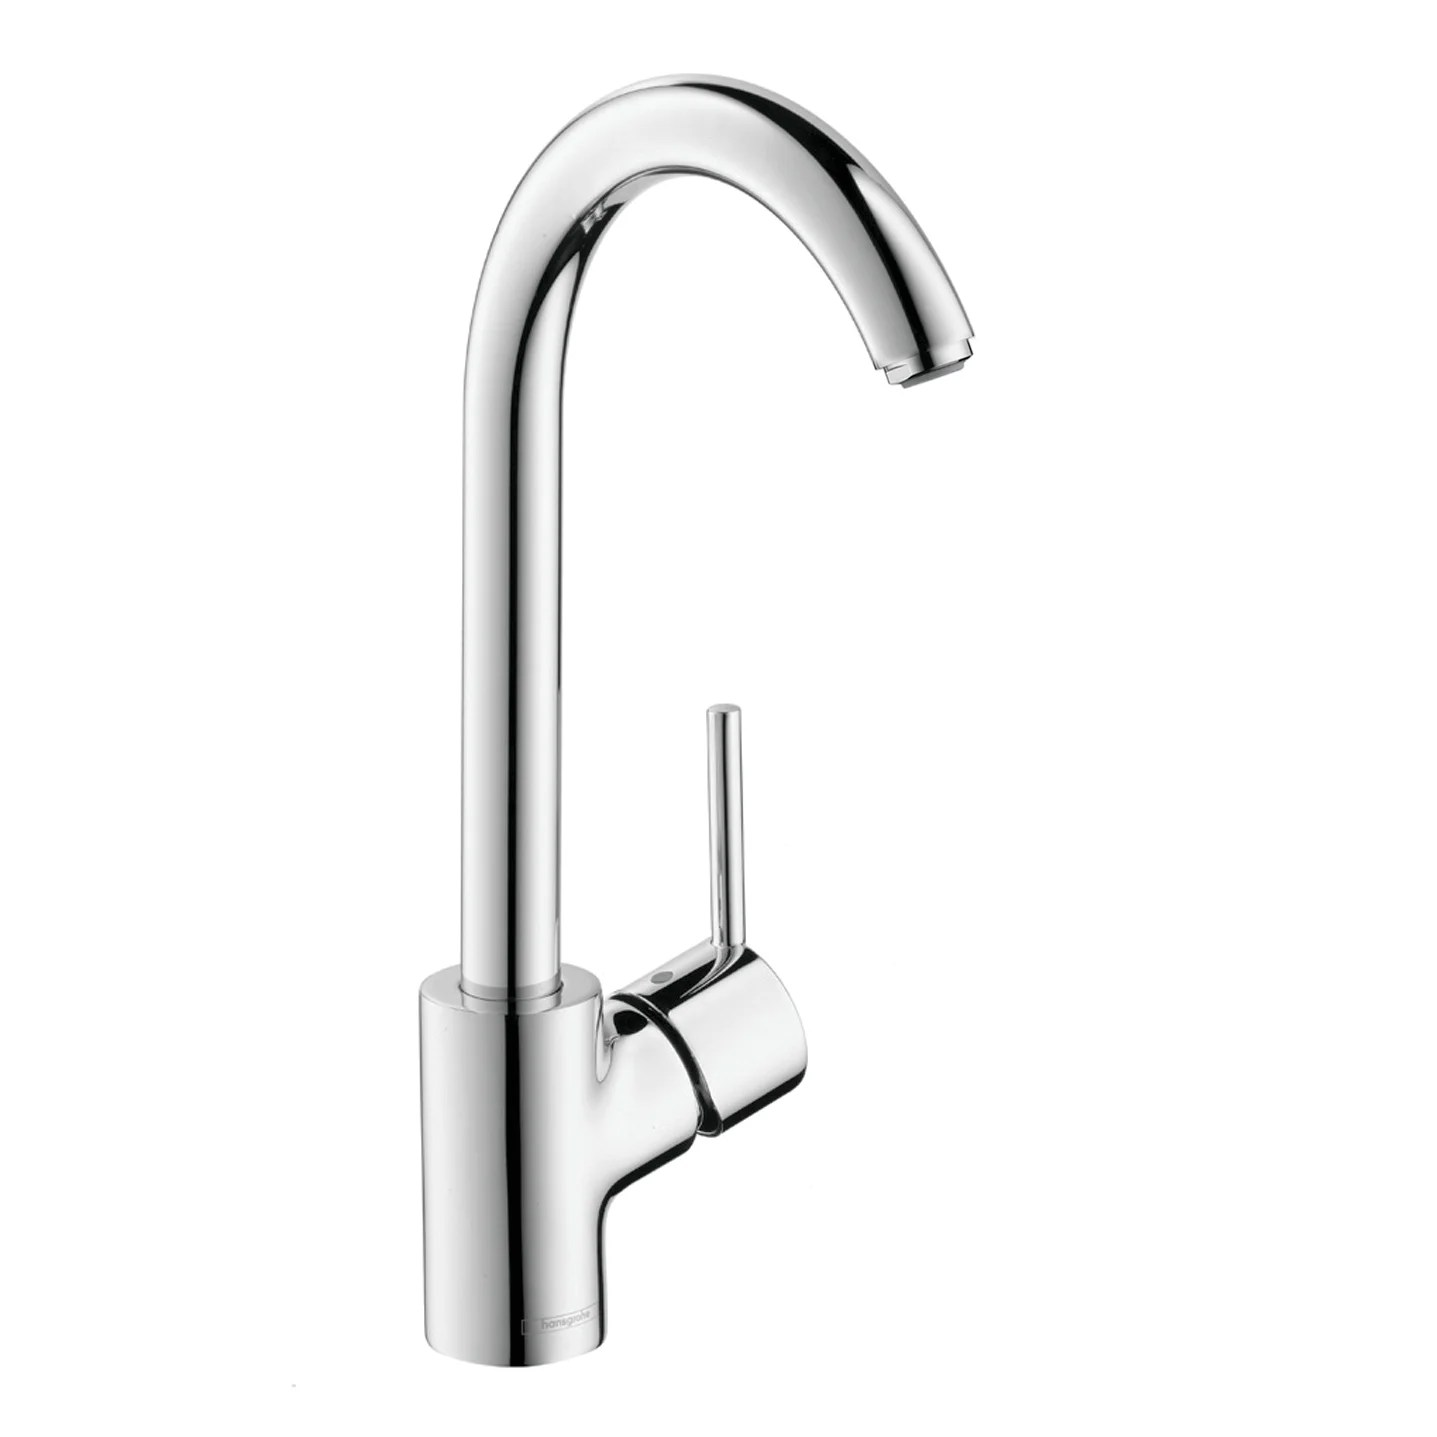 danze single handle kitchen faucet leaking danze kitchen faucets Danze Kitchen Faucet Loose Handle Cliff